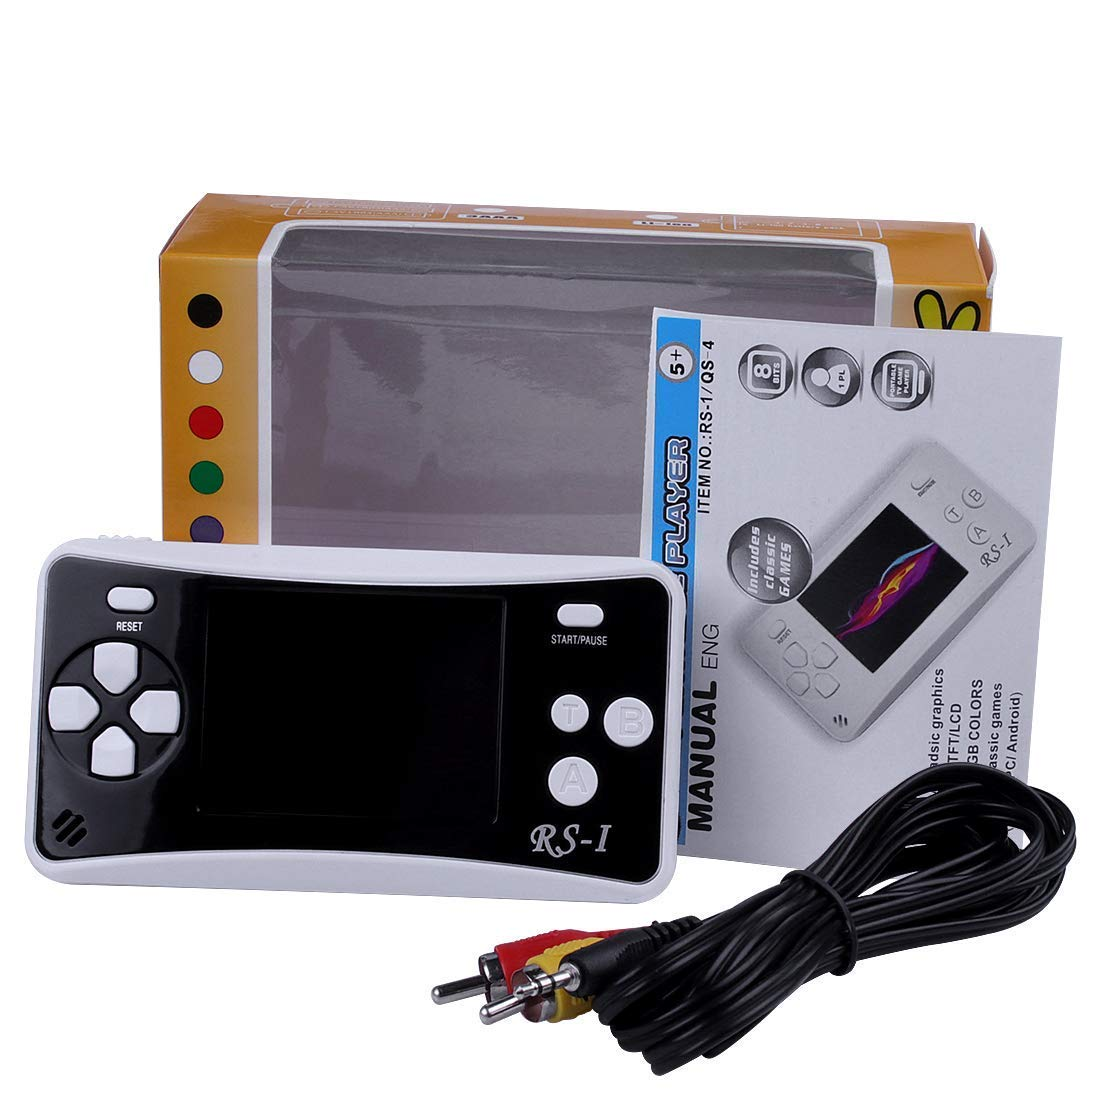 SKYRC Handheld Game Console for Kids,Classic Retro Game Player with 2.5'' LCD 8-Bit Portable Video Games Compatible with PAL AAD NTSC TV ,152 in 1 Classic Games -- (Black) by SKYRC (Image #4)